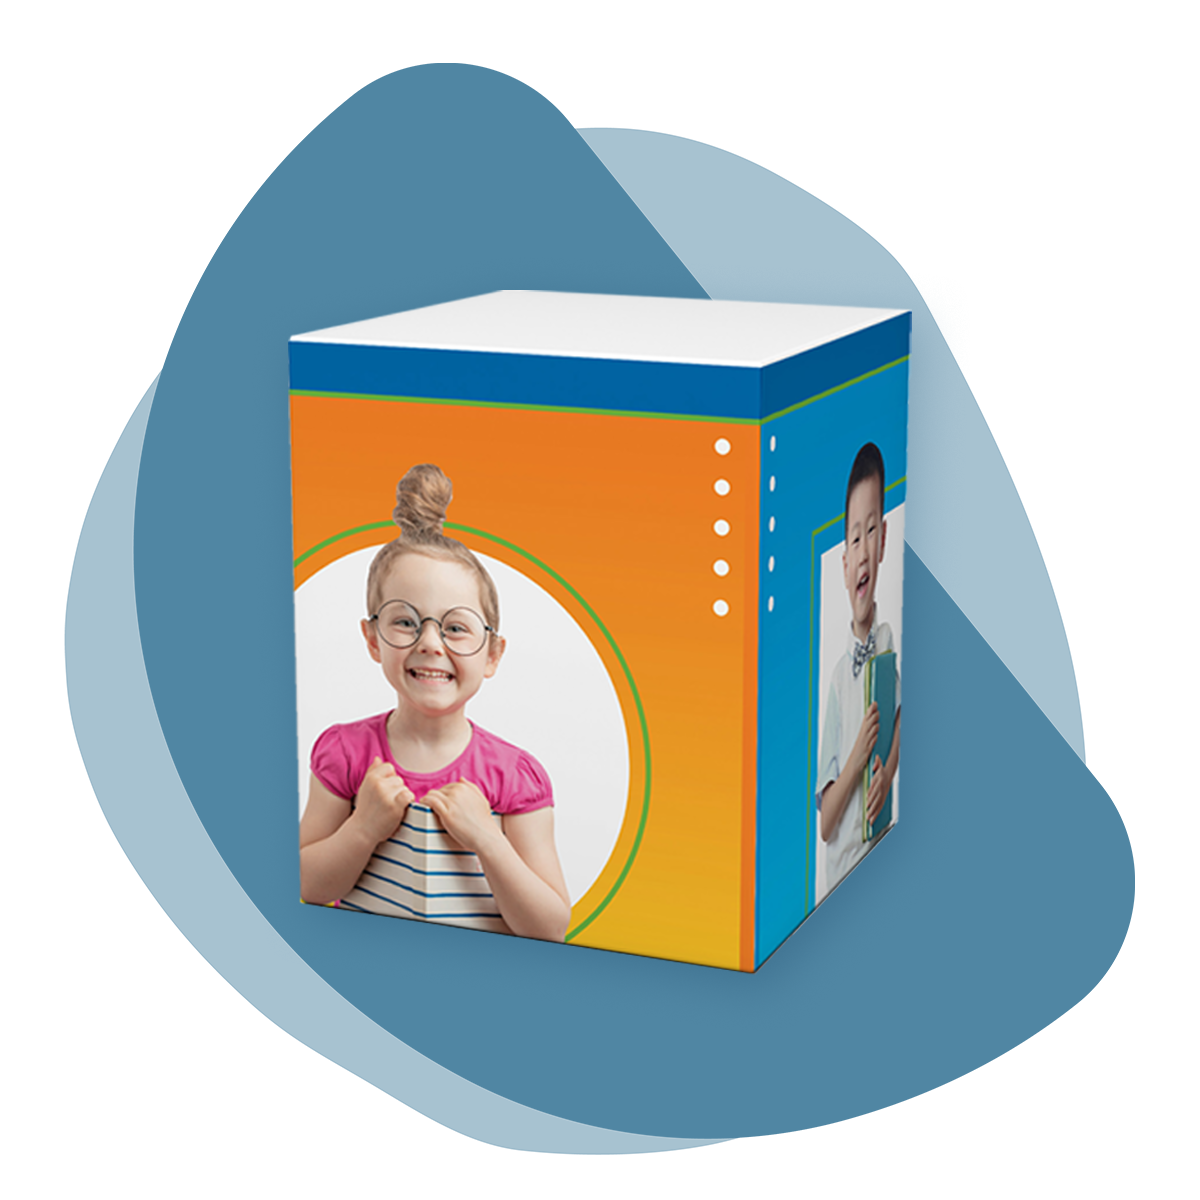 Organic blue splotch shape with a mockup of a box overlaid. The box is an even cube shape, photographed on an angle, and displays one side with an orange-yellow gradient and another with a teal-blue gradient. There are images of young children on each side, holding books and smiling, with white shapes behind them. The top border of the  box is a darker blue, and there are white dots along some of the edges.